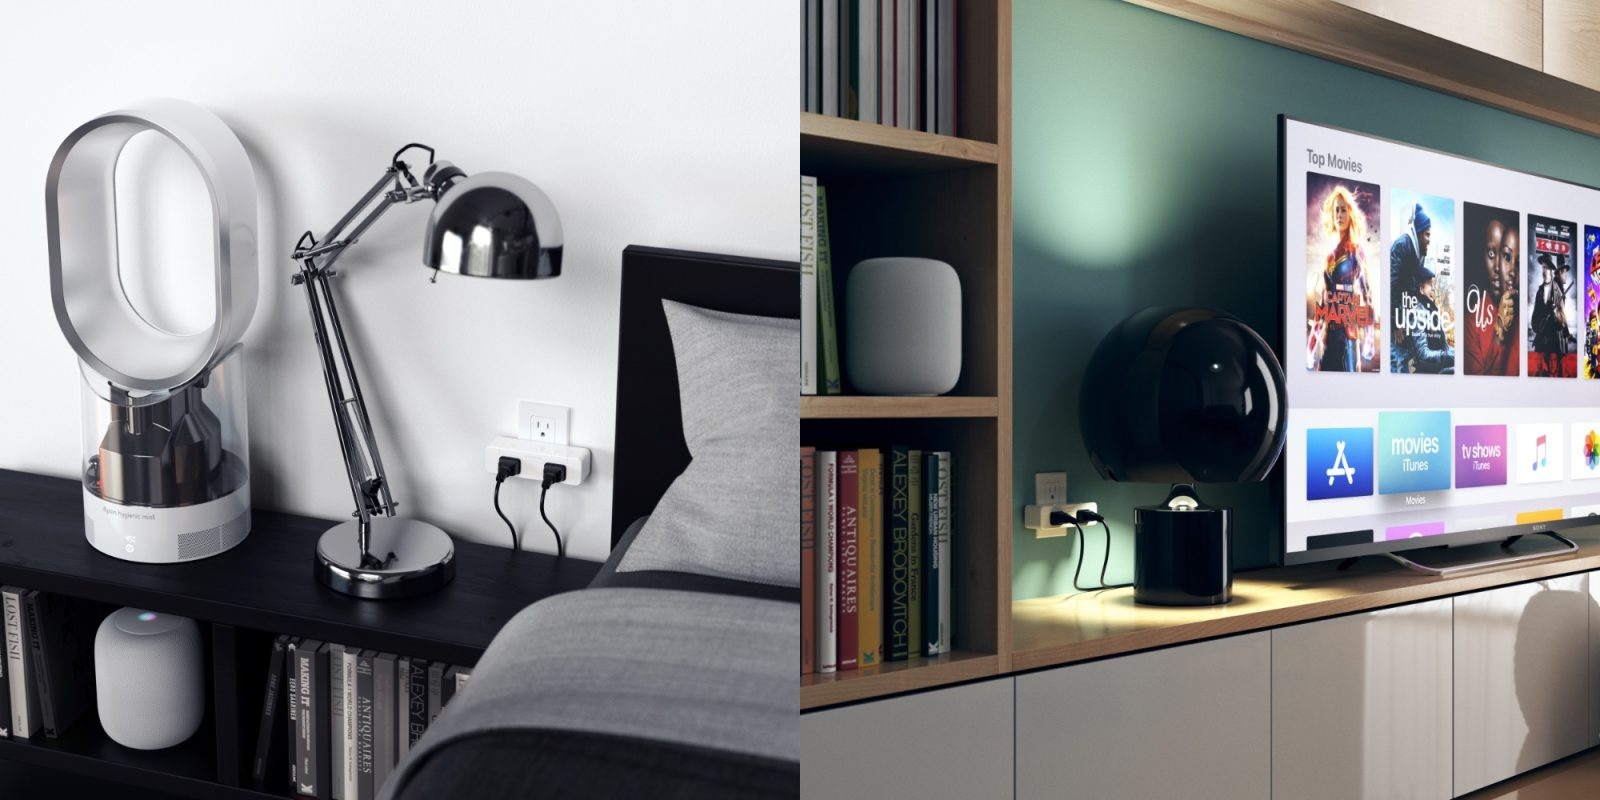 Satechi now sells a HomeKit plug that turns one dumb outlet into two smart outlets [30% off]